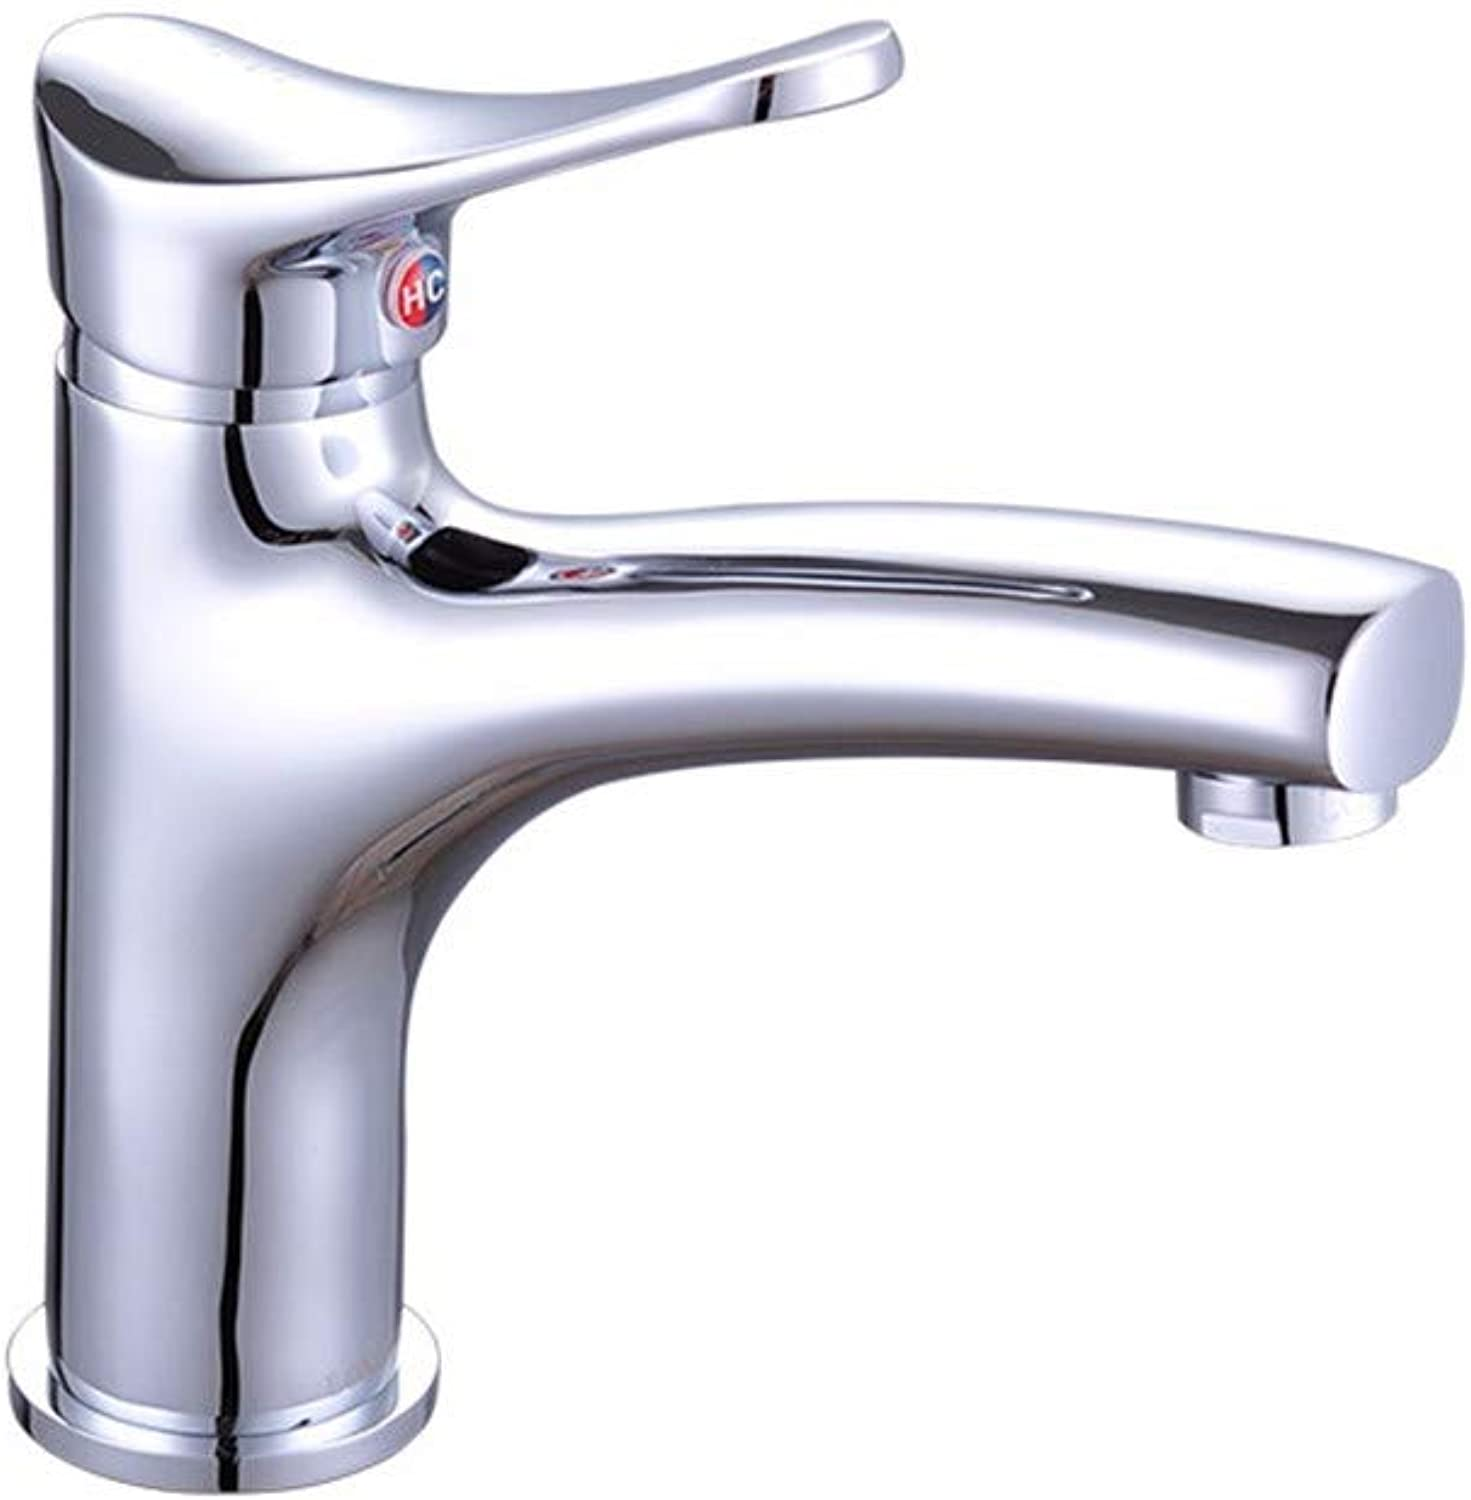 FT-13 Hot and Cold Faucet Retro Faucet Kitchen Bathroom Faucet Bathroom Copper hot and Cold Water washbasin Faucet Basin Faucet Basin Faucet